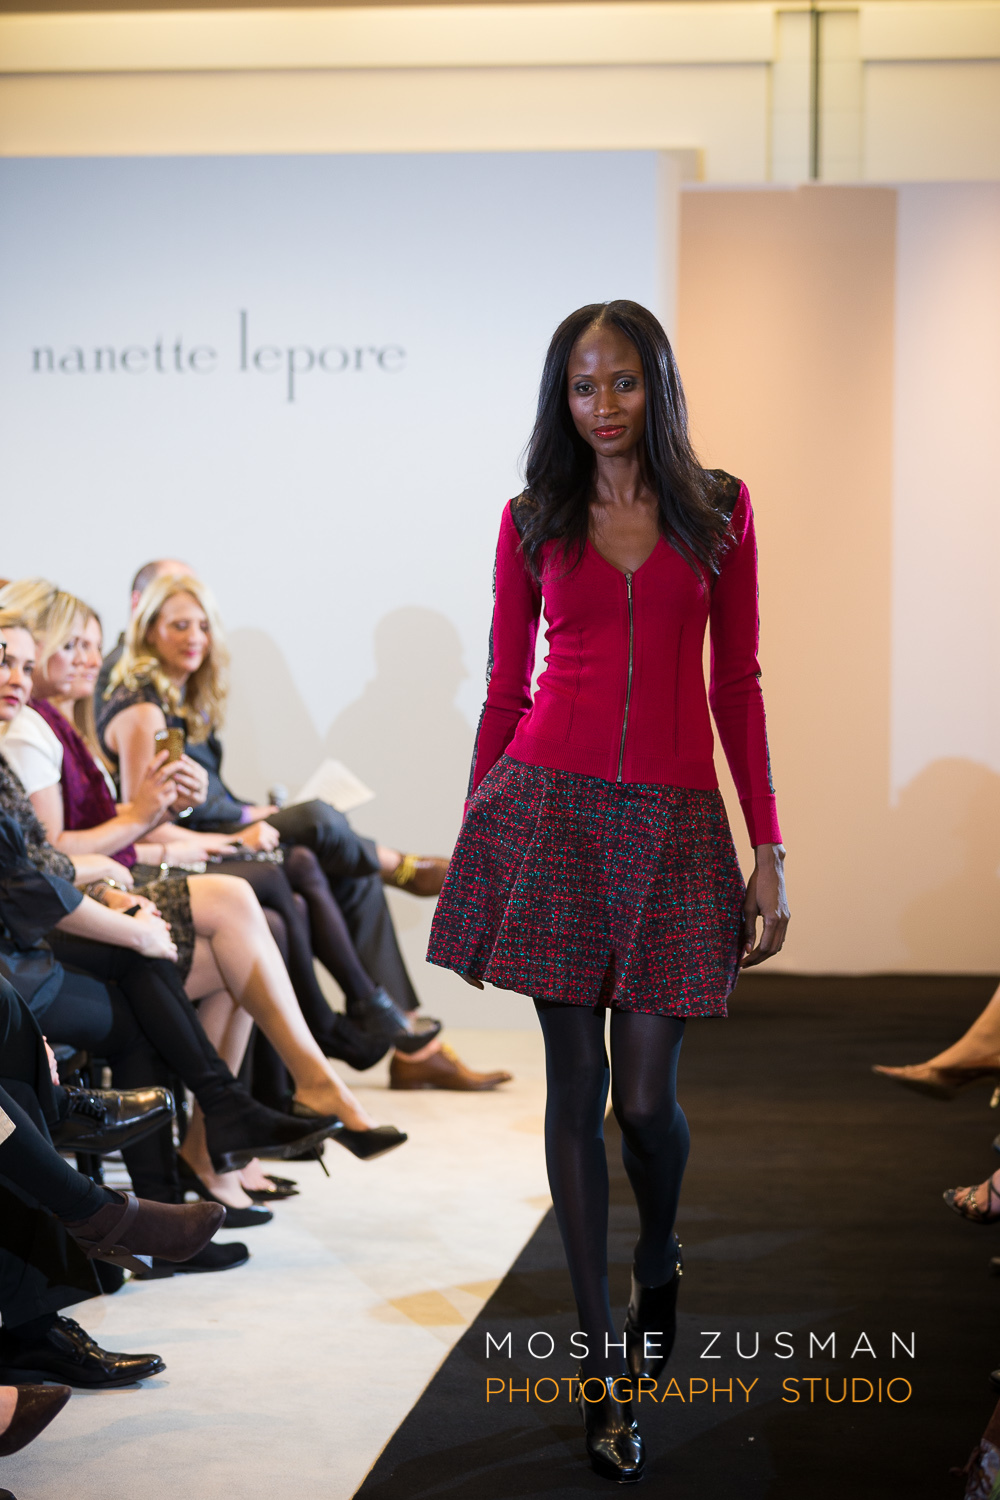 Nanette-Lepore-Saks-Fifth-Avenue-Fashion-Show-Moshe-Zusman-Photography-10.jpg